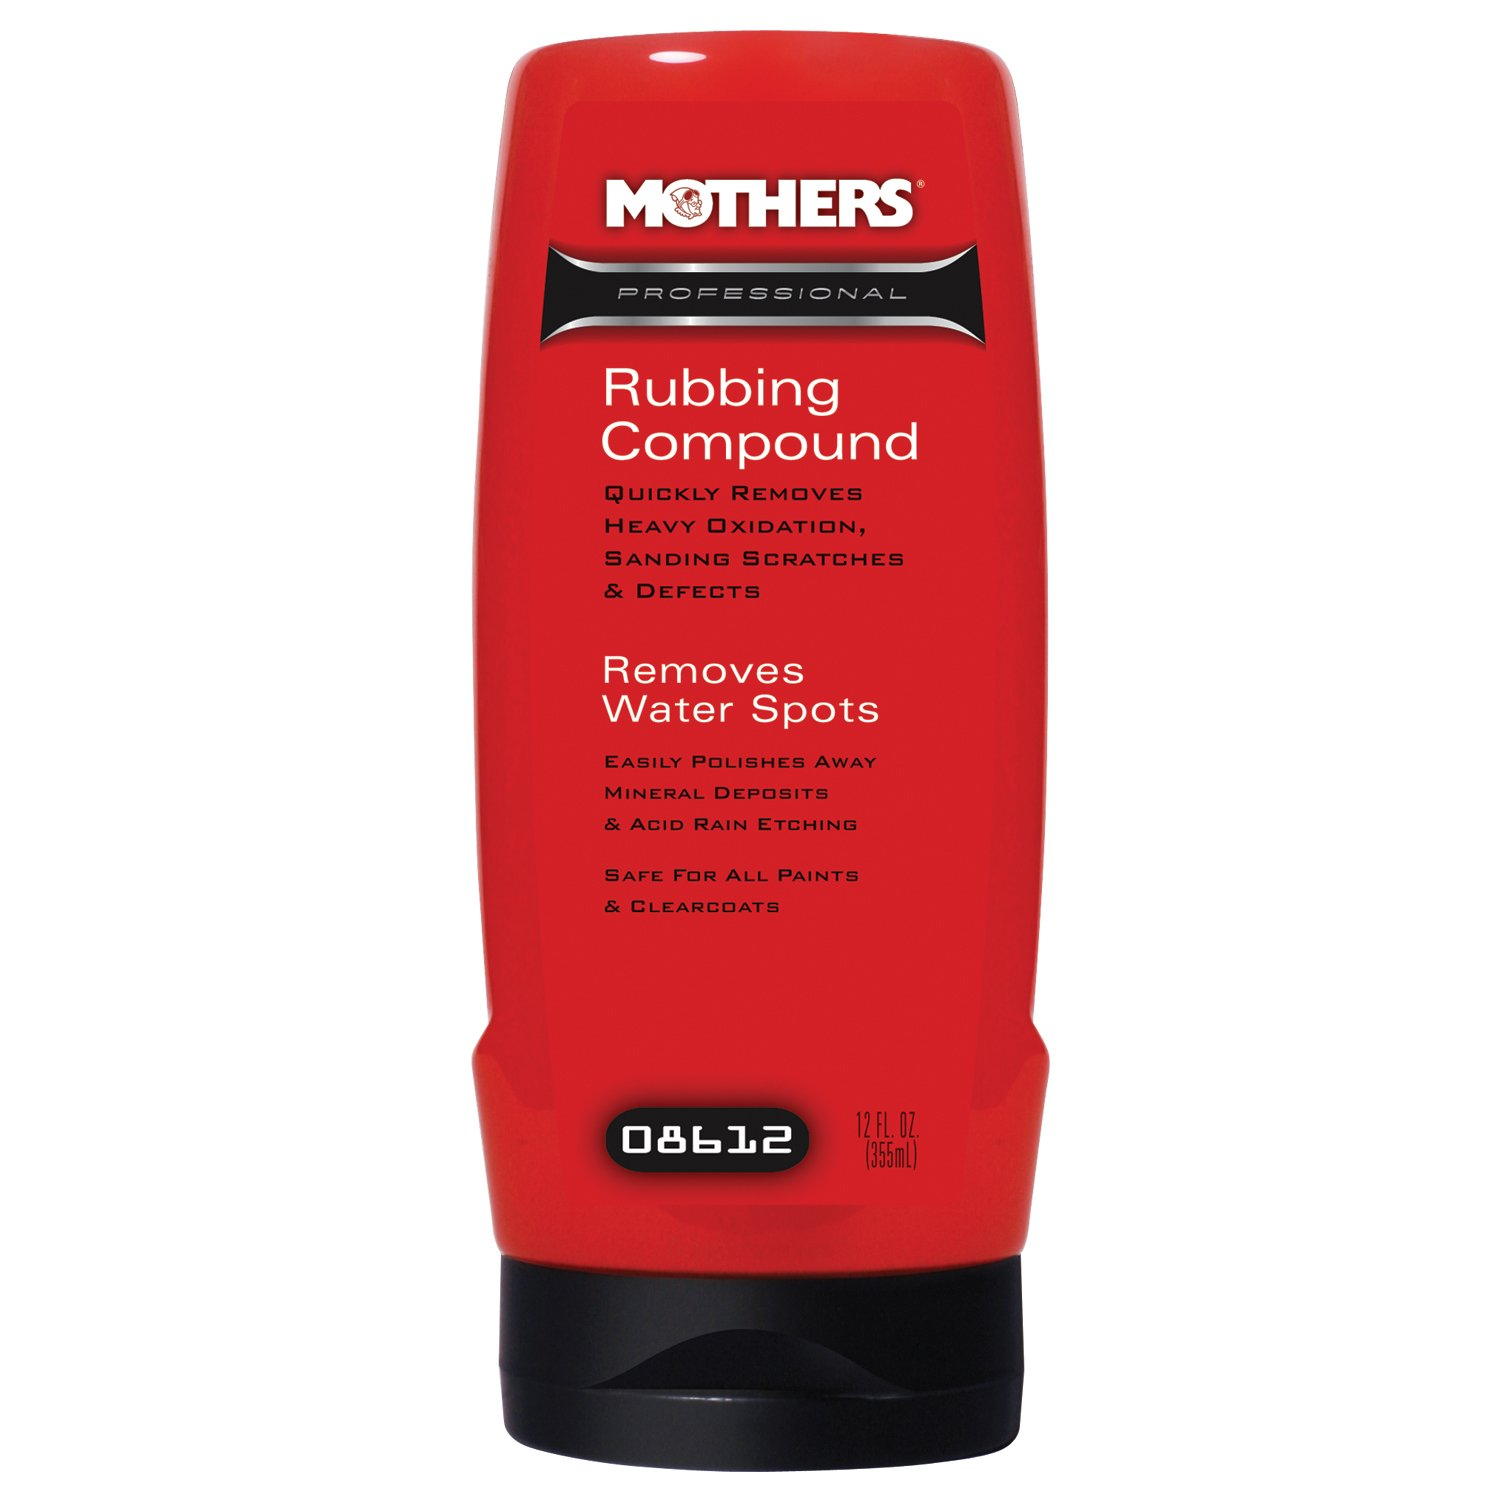 Mothers 08612-6PK Professional Rubbing Compound - 12 oz, (Pack of 6)